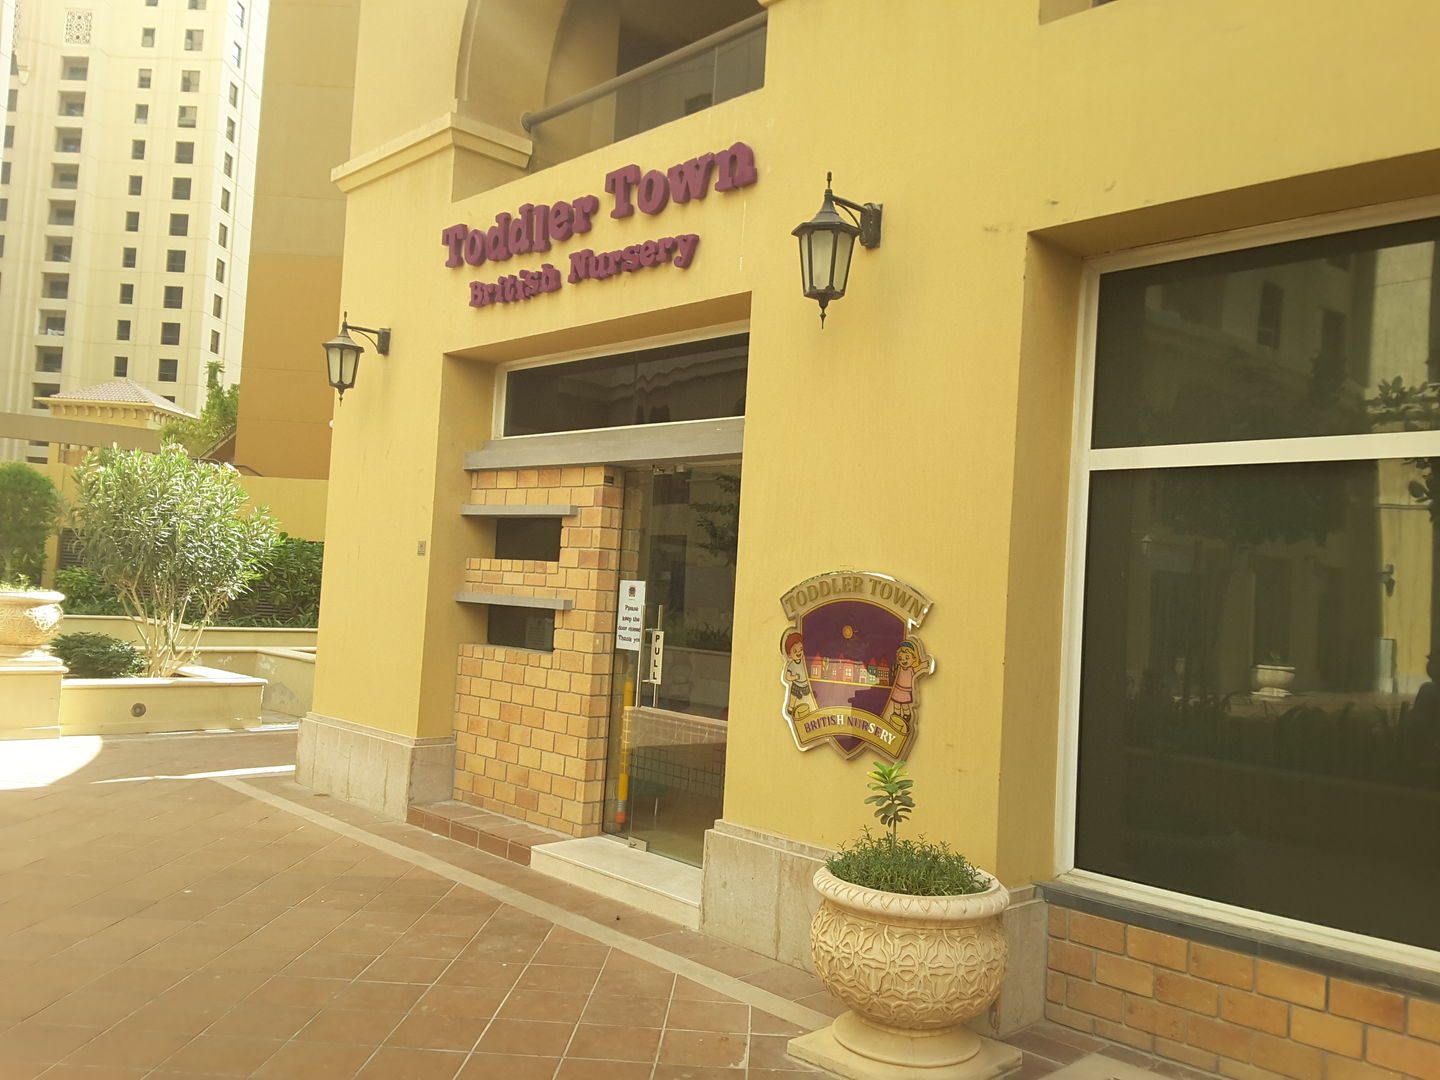 HiDubai-business-toddler-town-british-nursery-education-daycare-centres-playschools-jumeirah-beach-residence-marsa-dubai-dubai-2